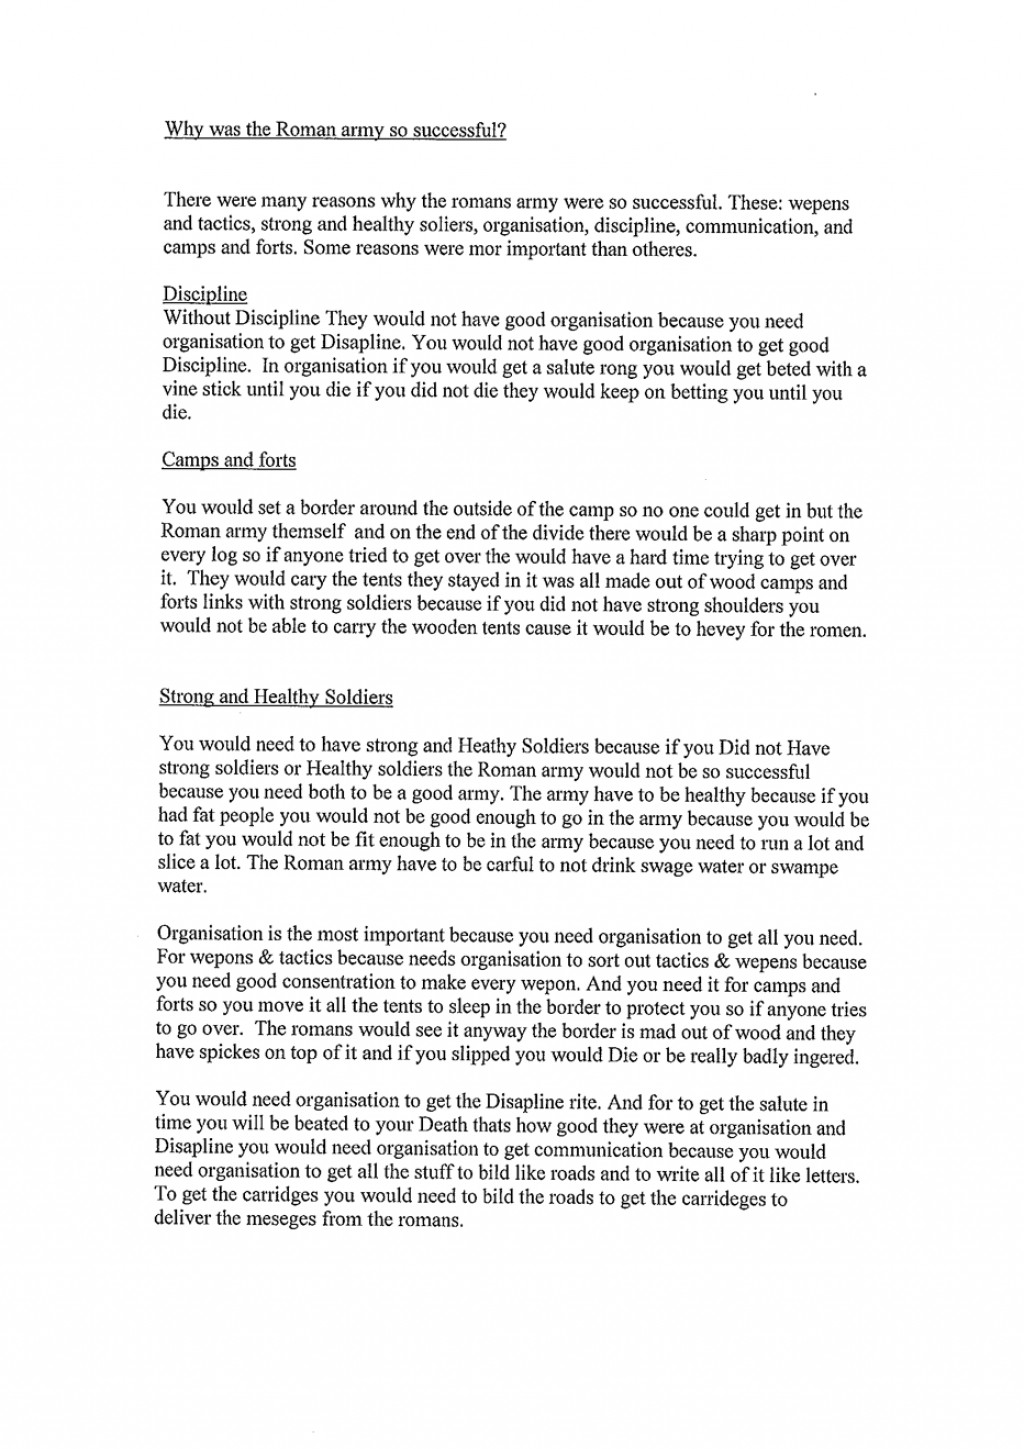 002 History20level203201 120 Tcm8 Essay Example Exemplification Unusual Topics Good Unique Question Large